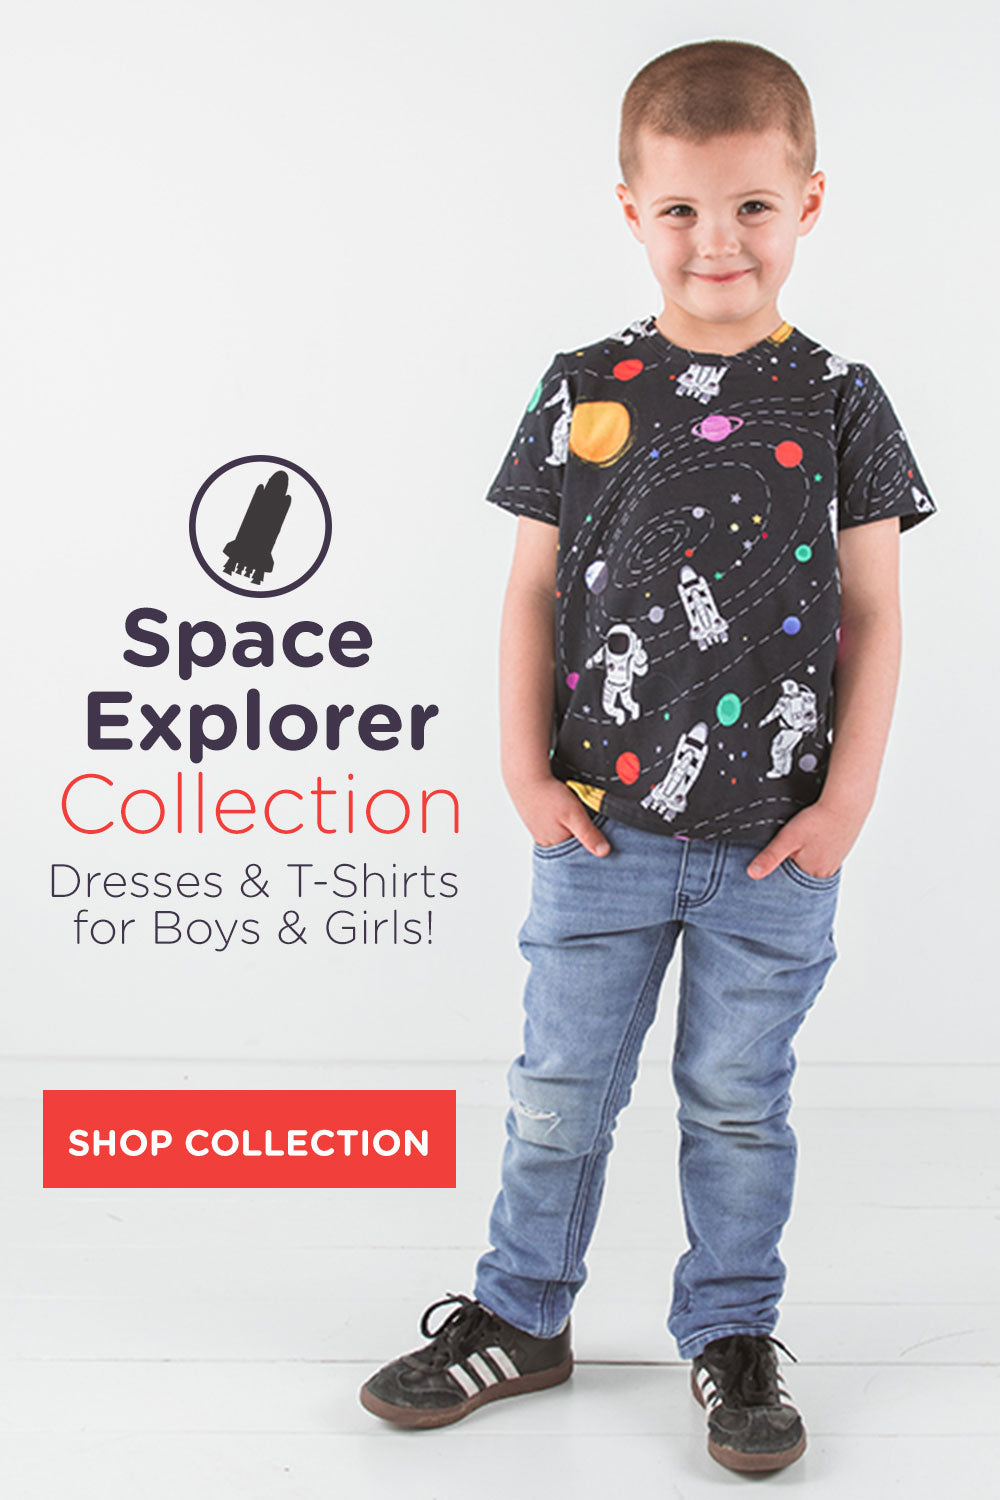 Shop the new Space Explorer collection